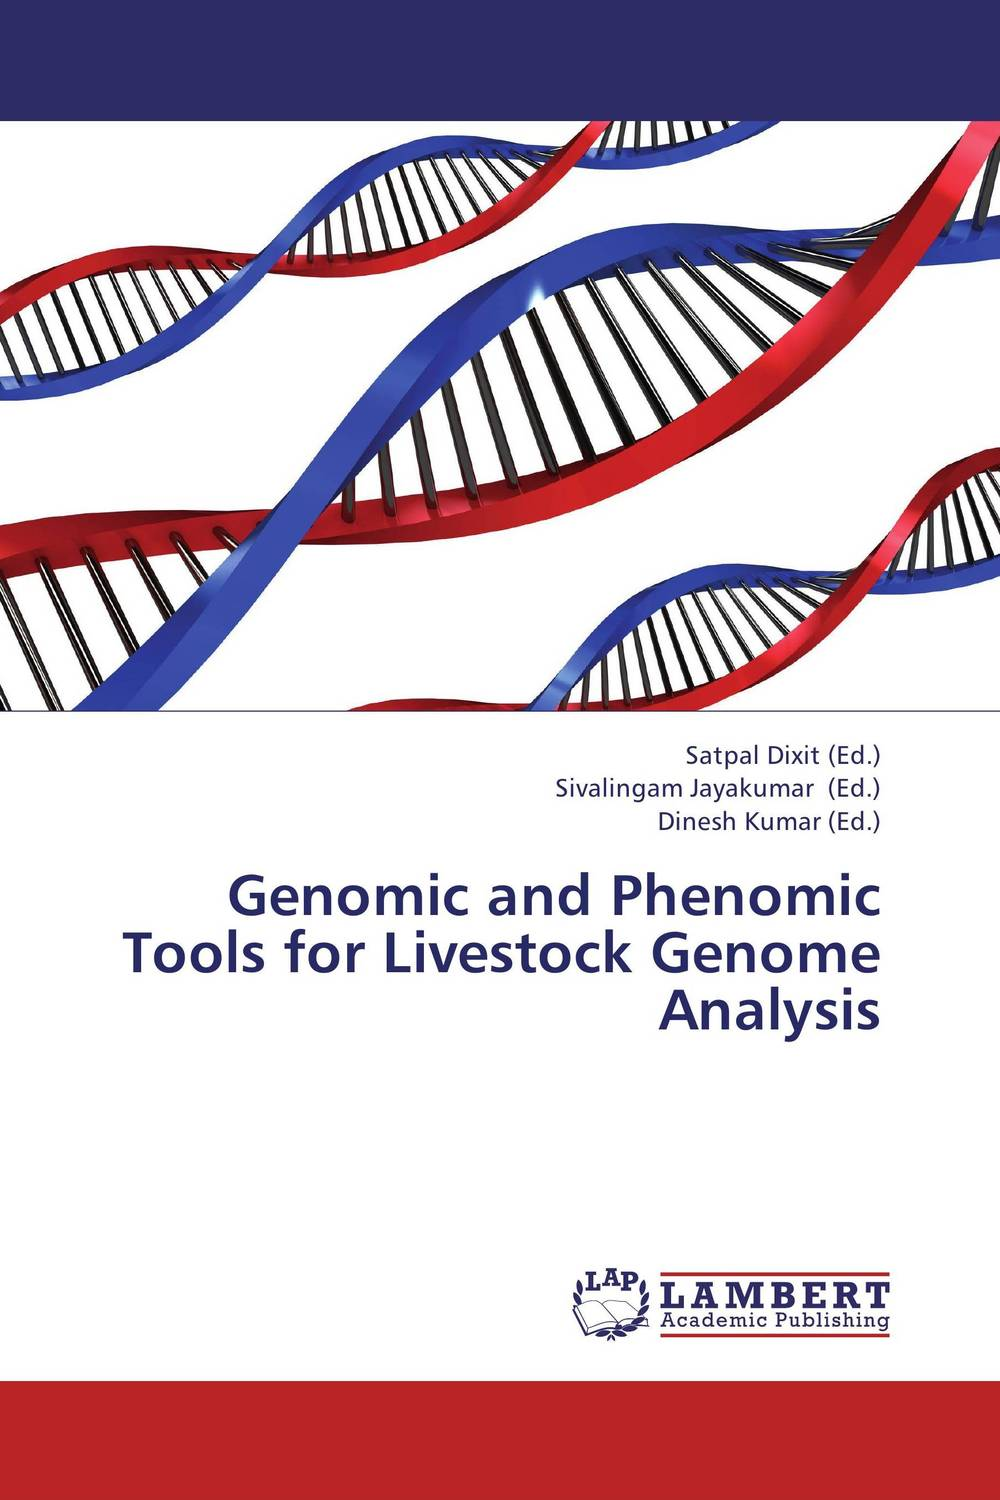 Genomic and Phenomic Tools for Livestock Genome Analysis stem bromelain in silico analysis for stability and modification